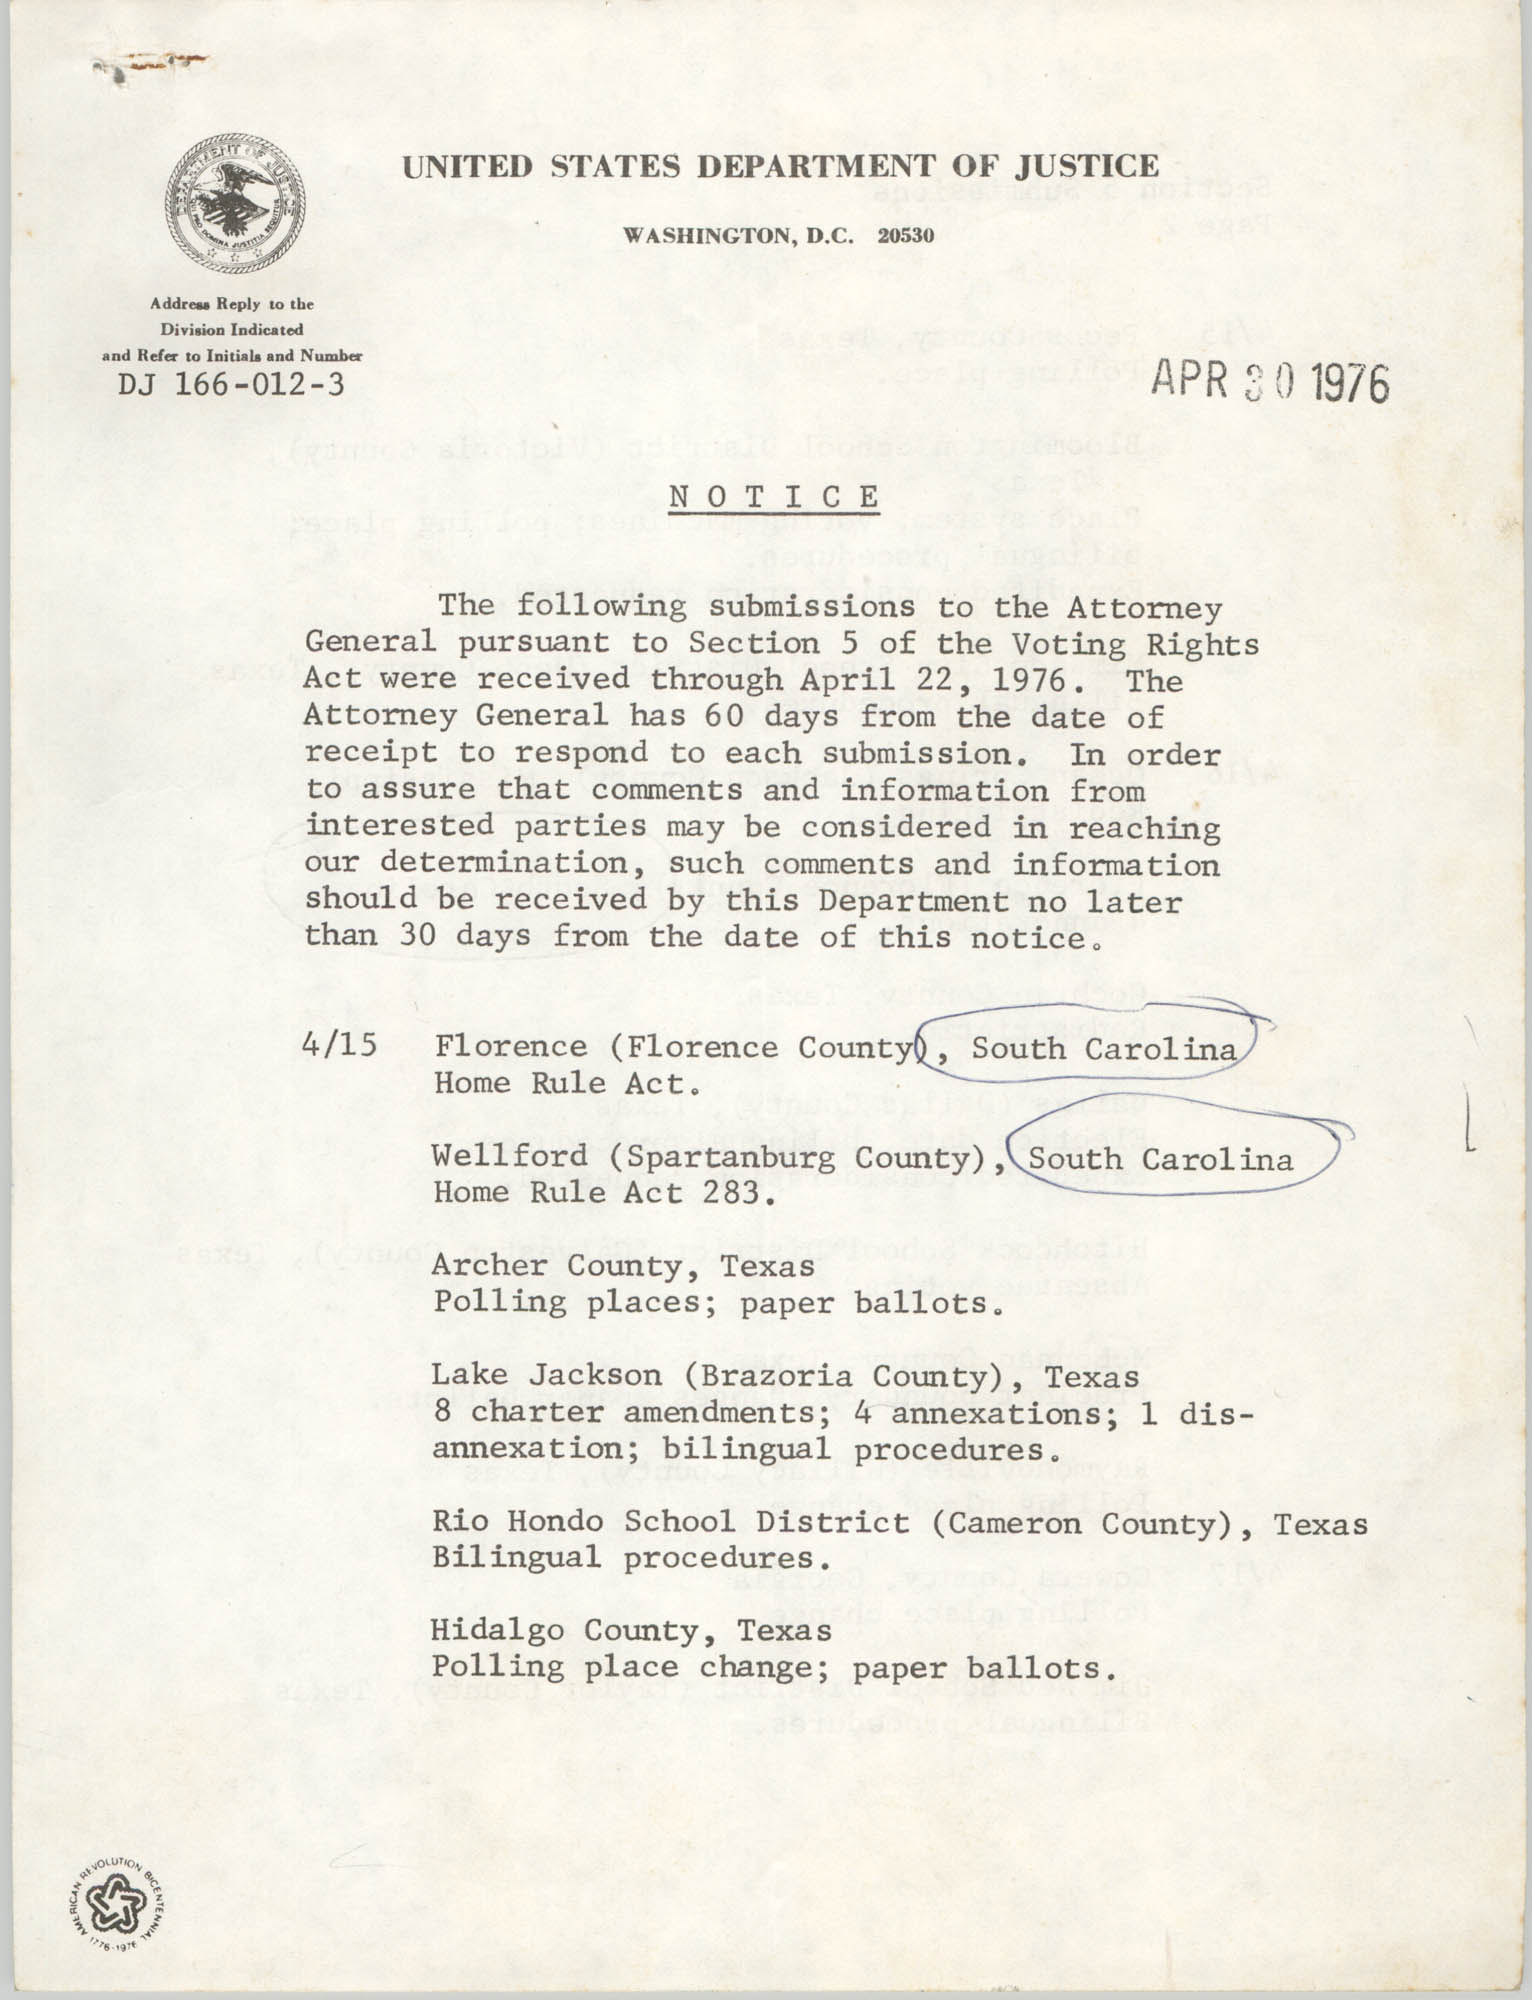 United States Department of Justice Notice, April 30, 1976, Page 1